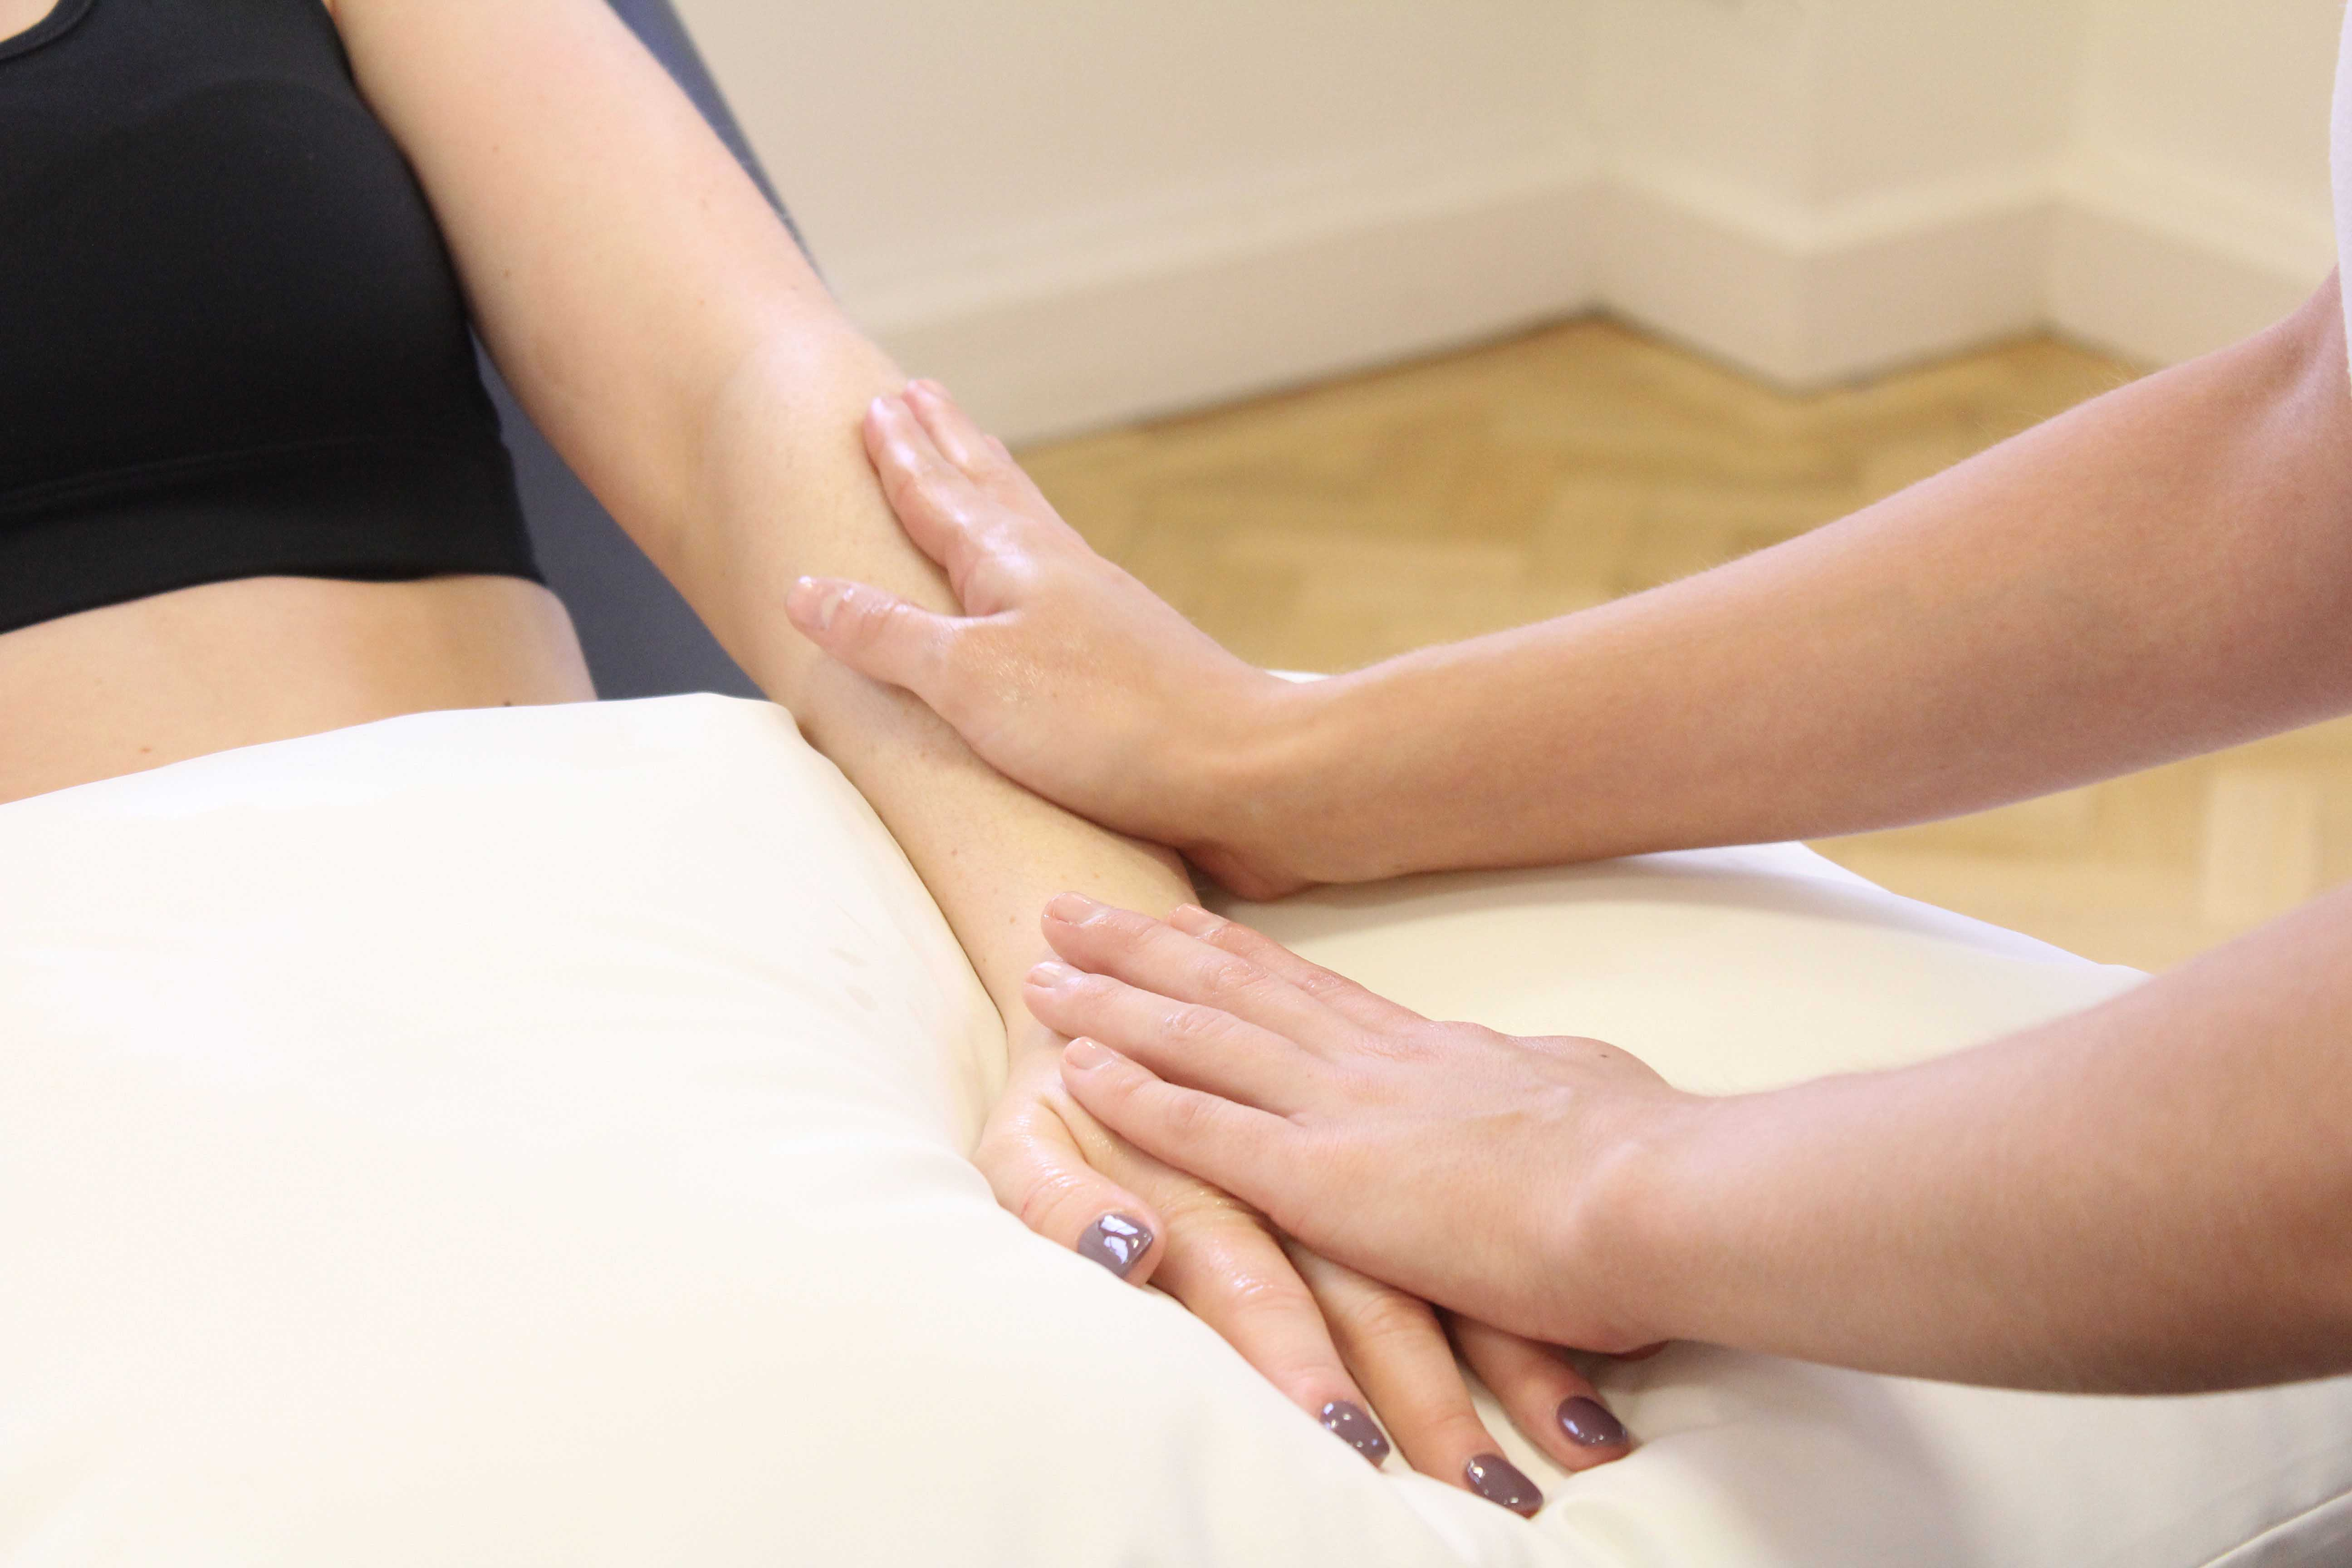 Massage to push excess fluids towards the lymphatic nodes where they can drain